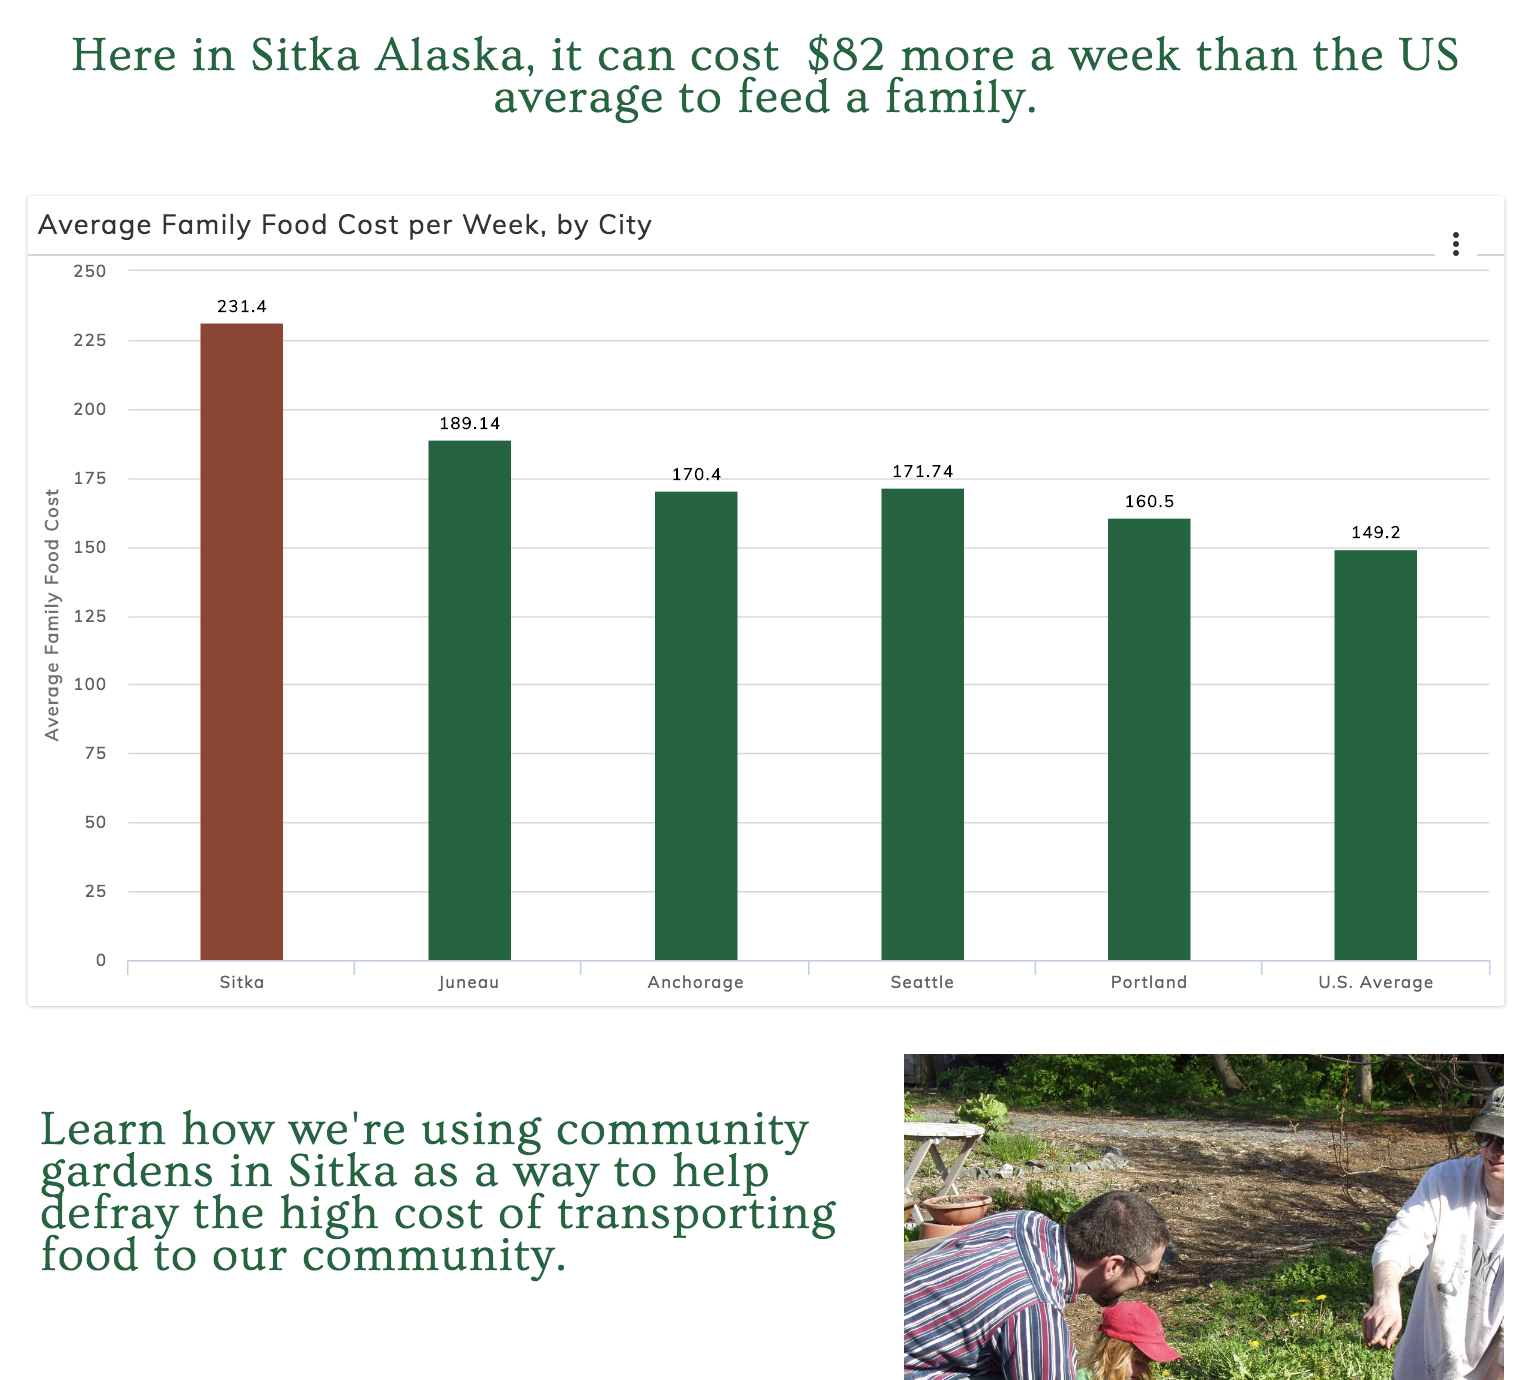 LiveStories charts highlight the challenge of getting fresh, healthy food in Sitka.